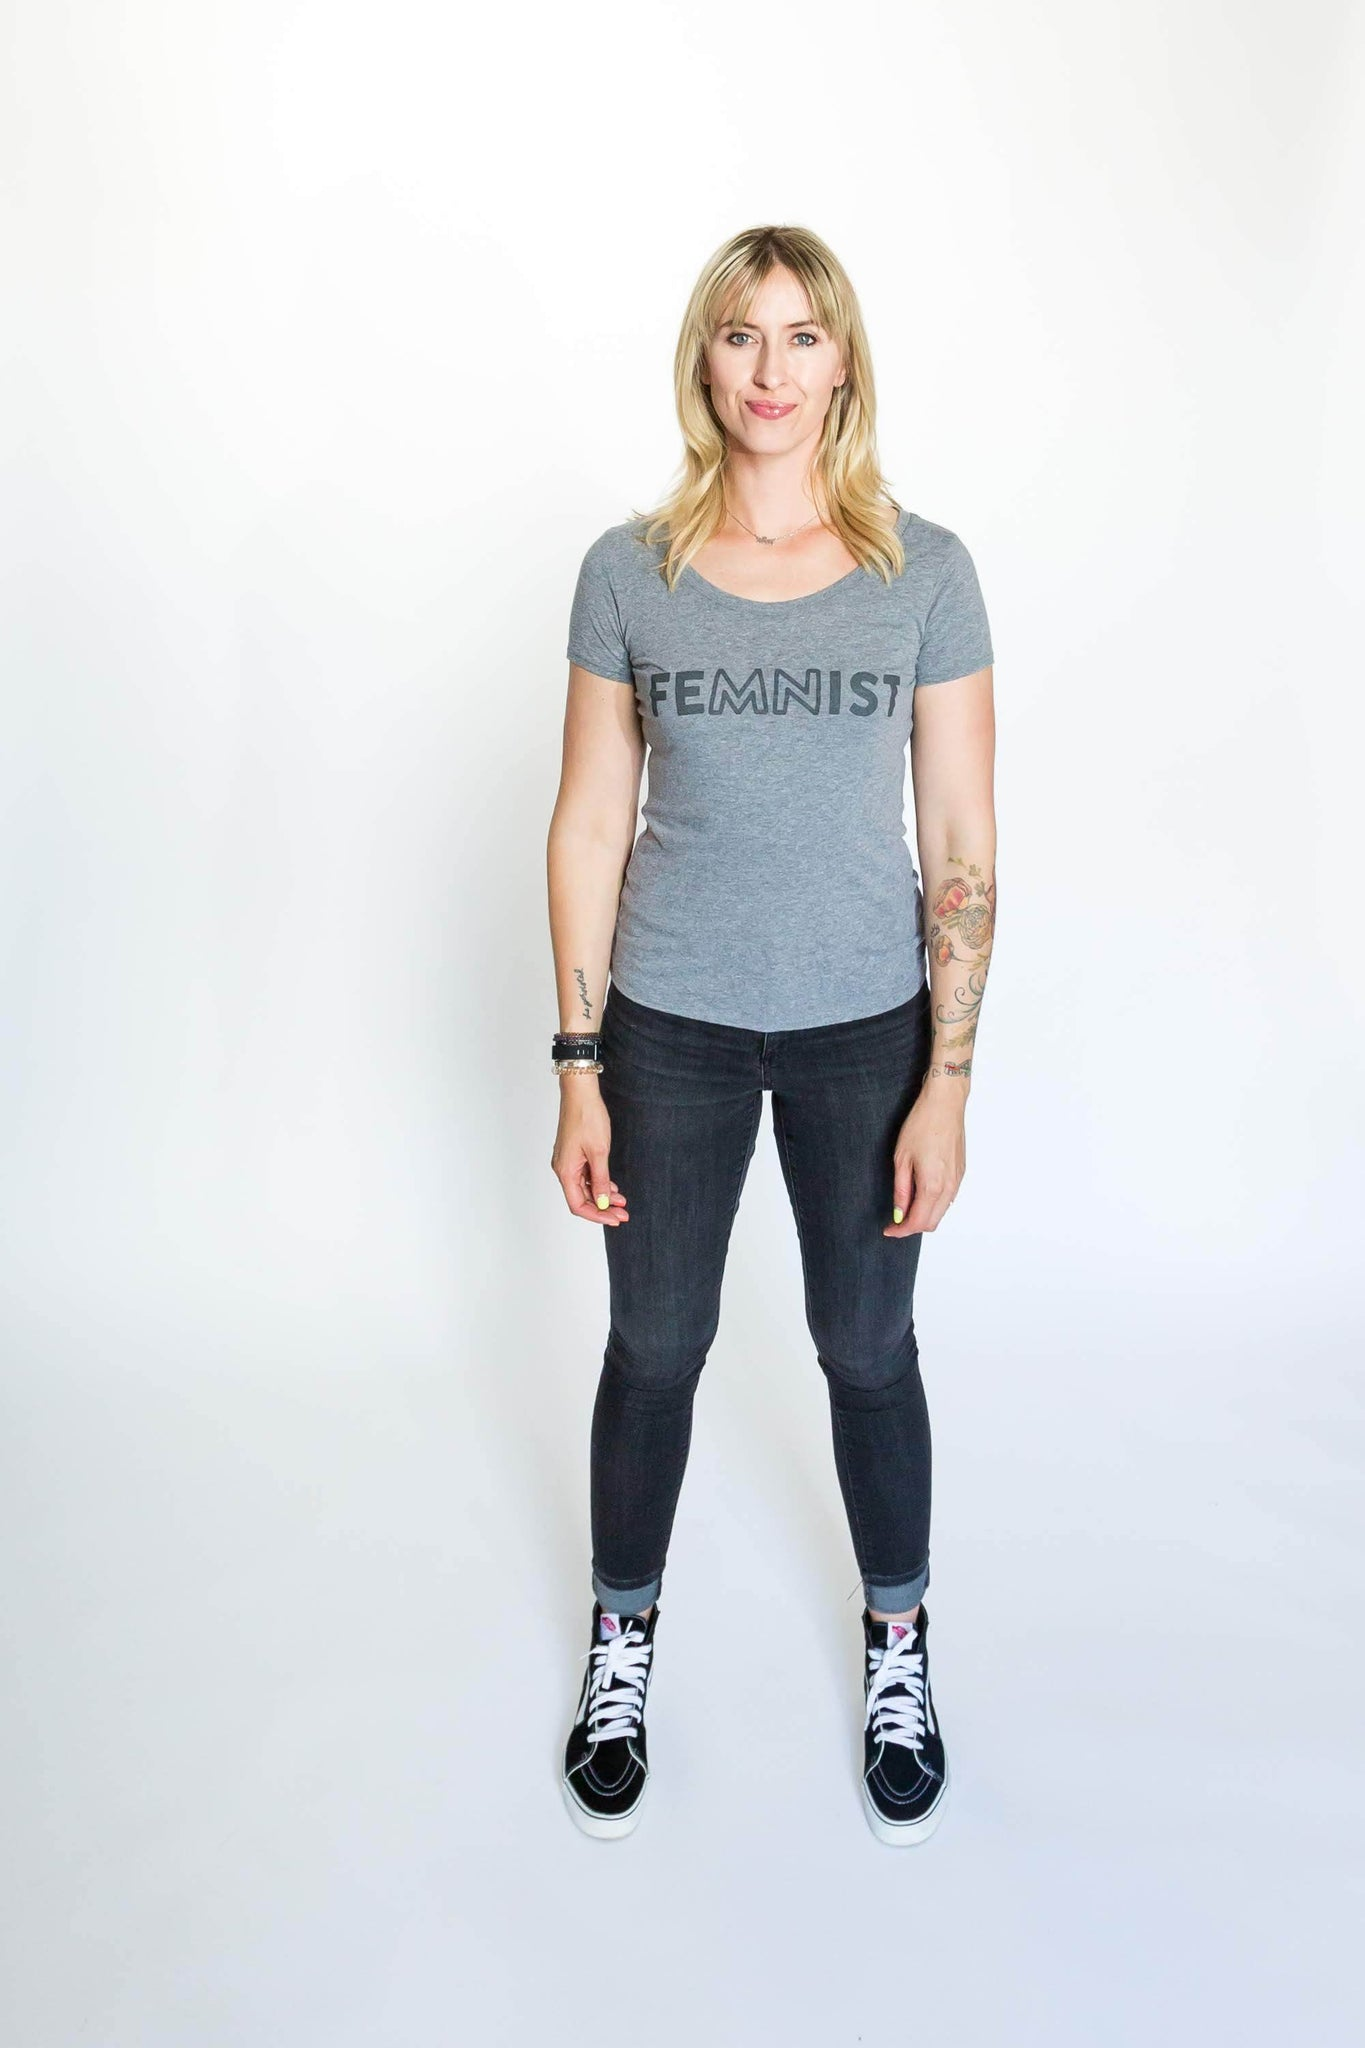 The Original FeMNist Tee - Women's